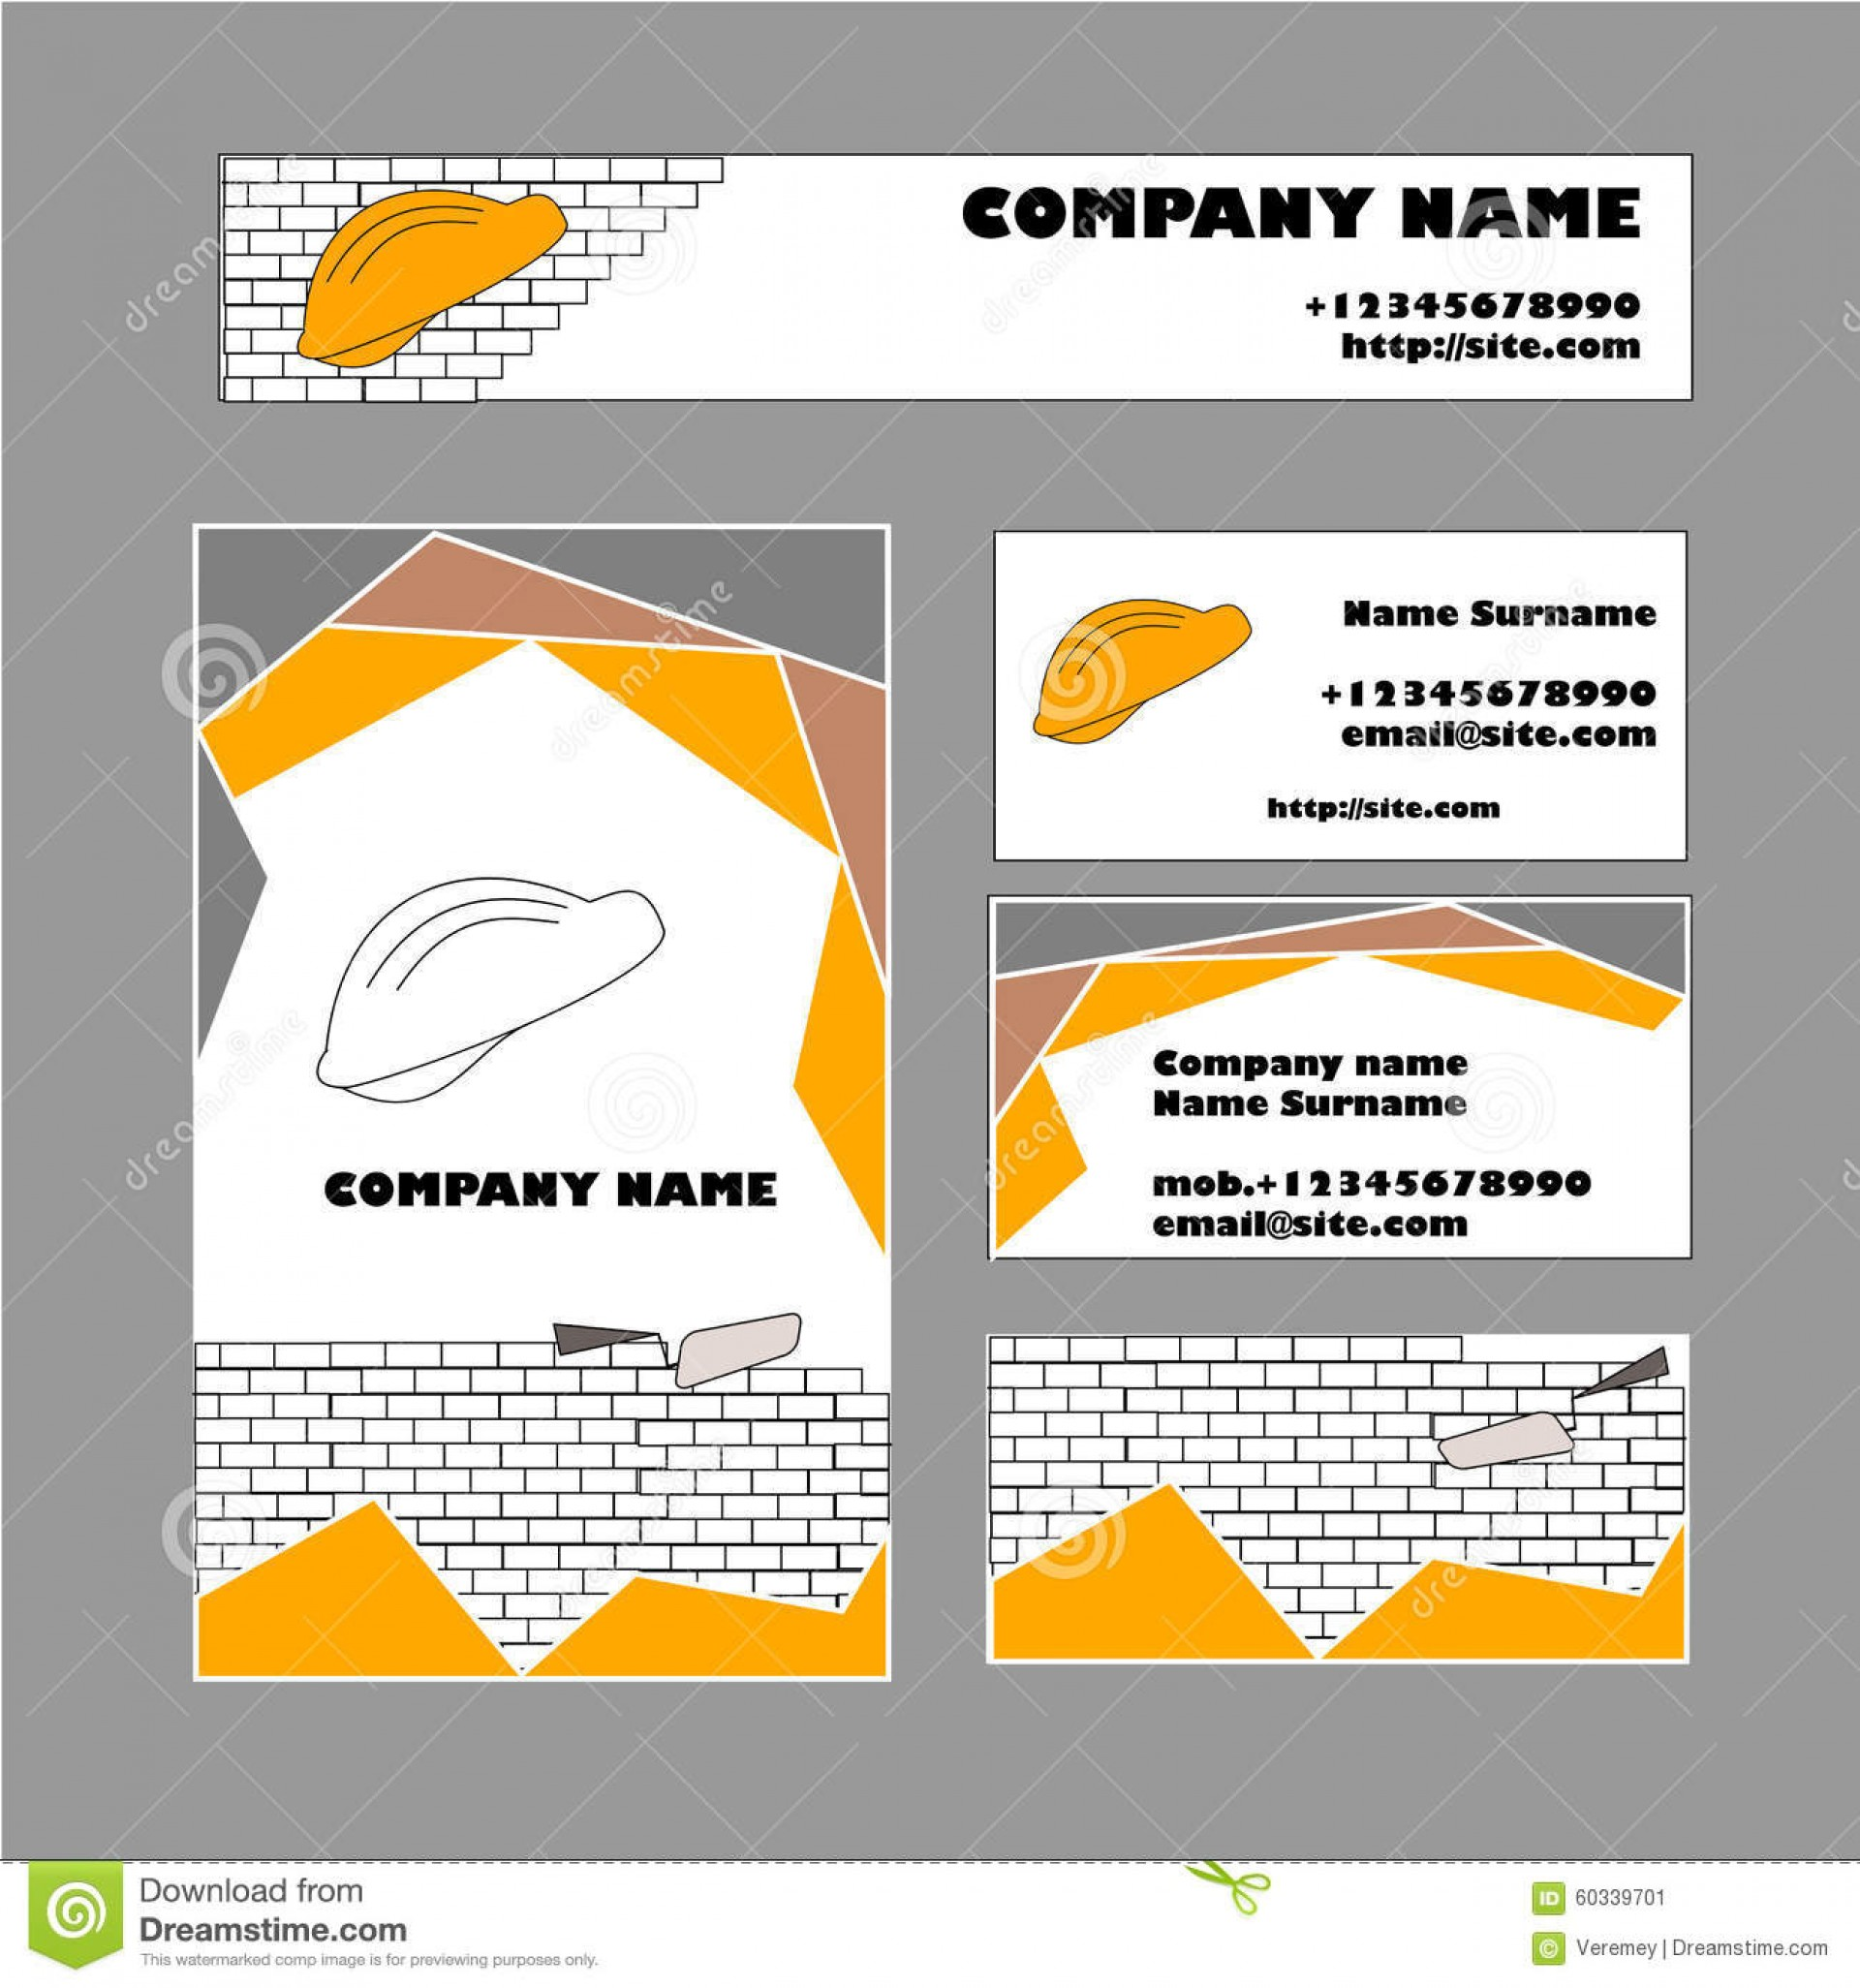 009 Exceptional Construction Busines Card Template Example  Templates Visiting Company Format Design Psd1920